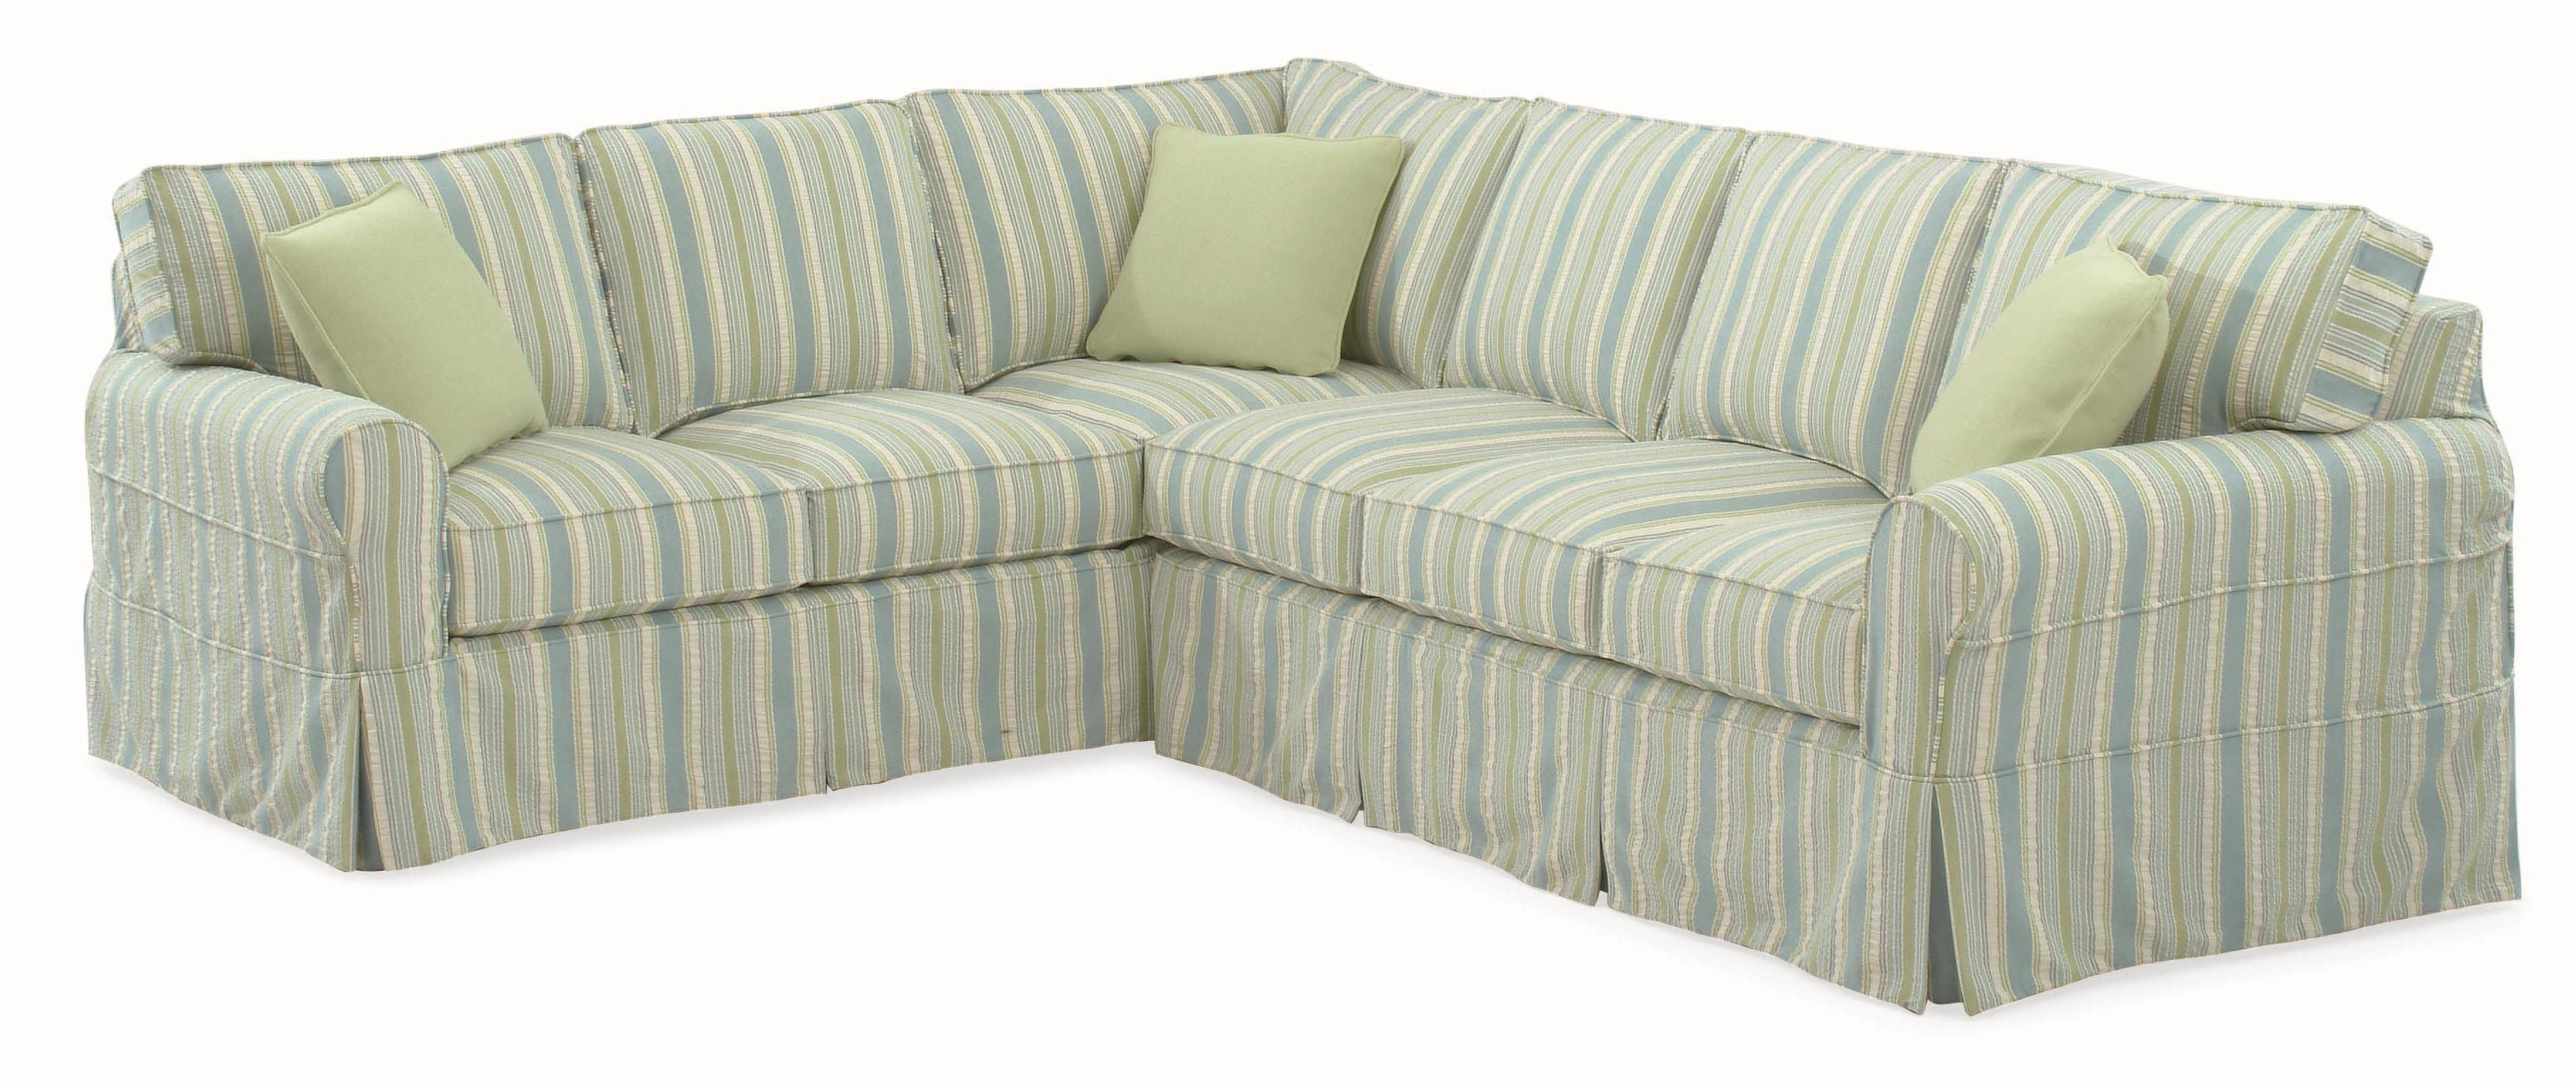 Slipcover Sectional Sofas | Tehranmix Decoration In Braxton Sectional Sofas (Image 19 of 20)